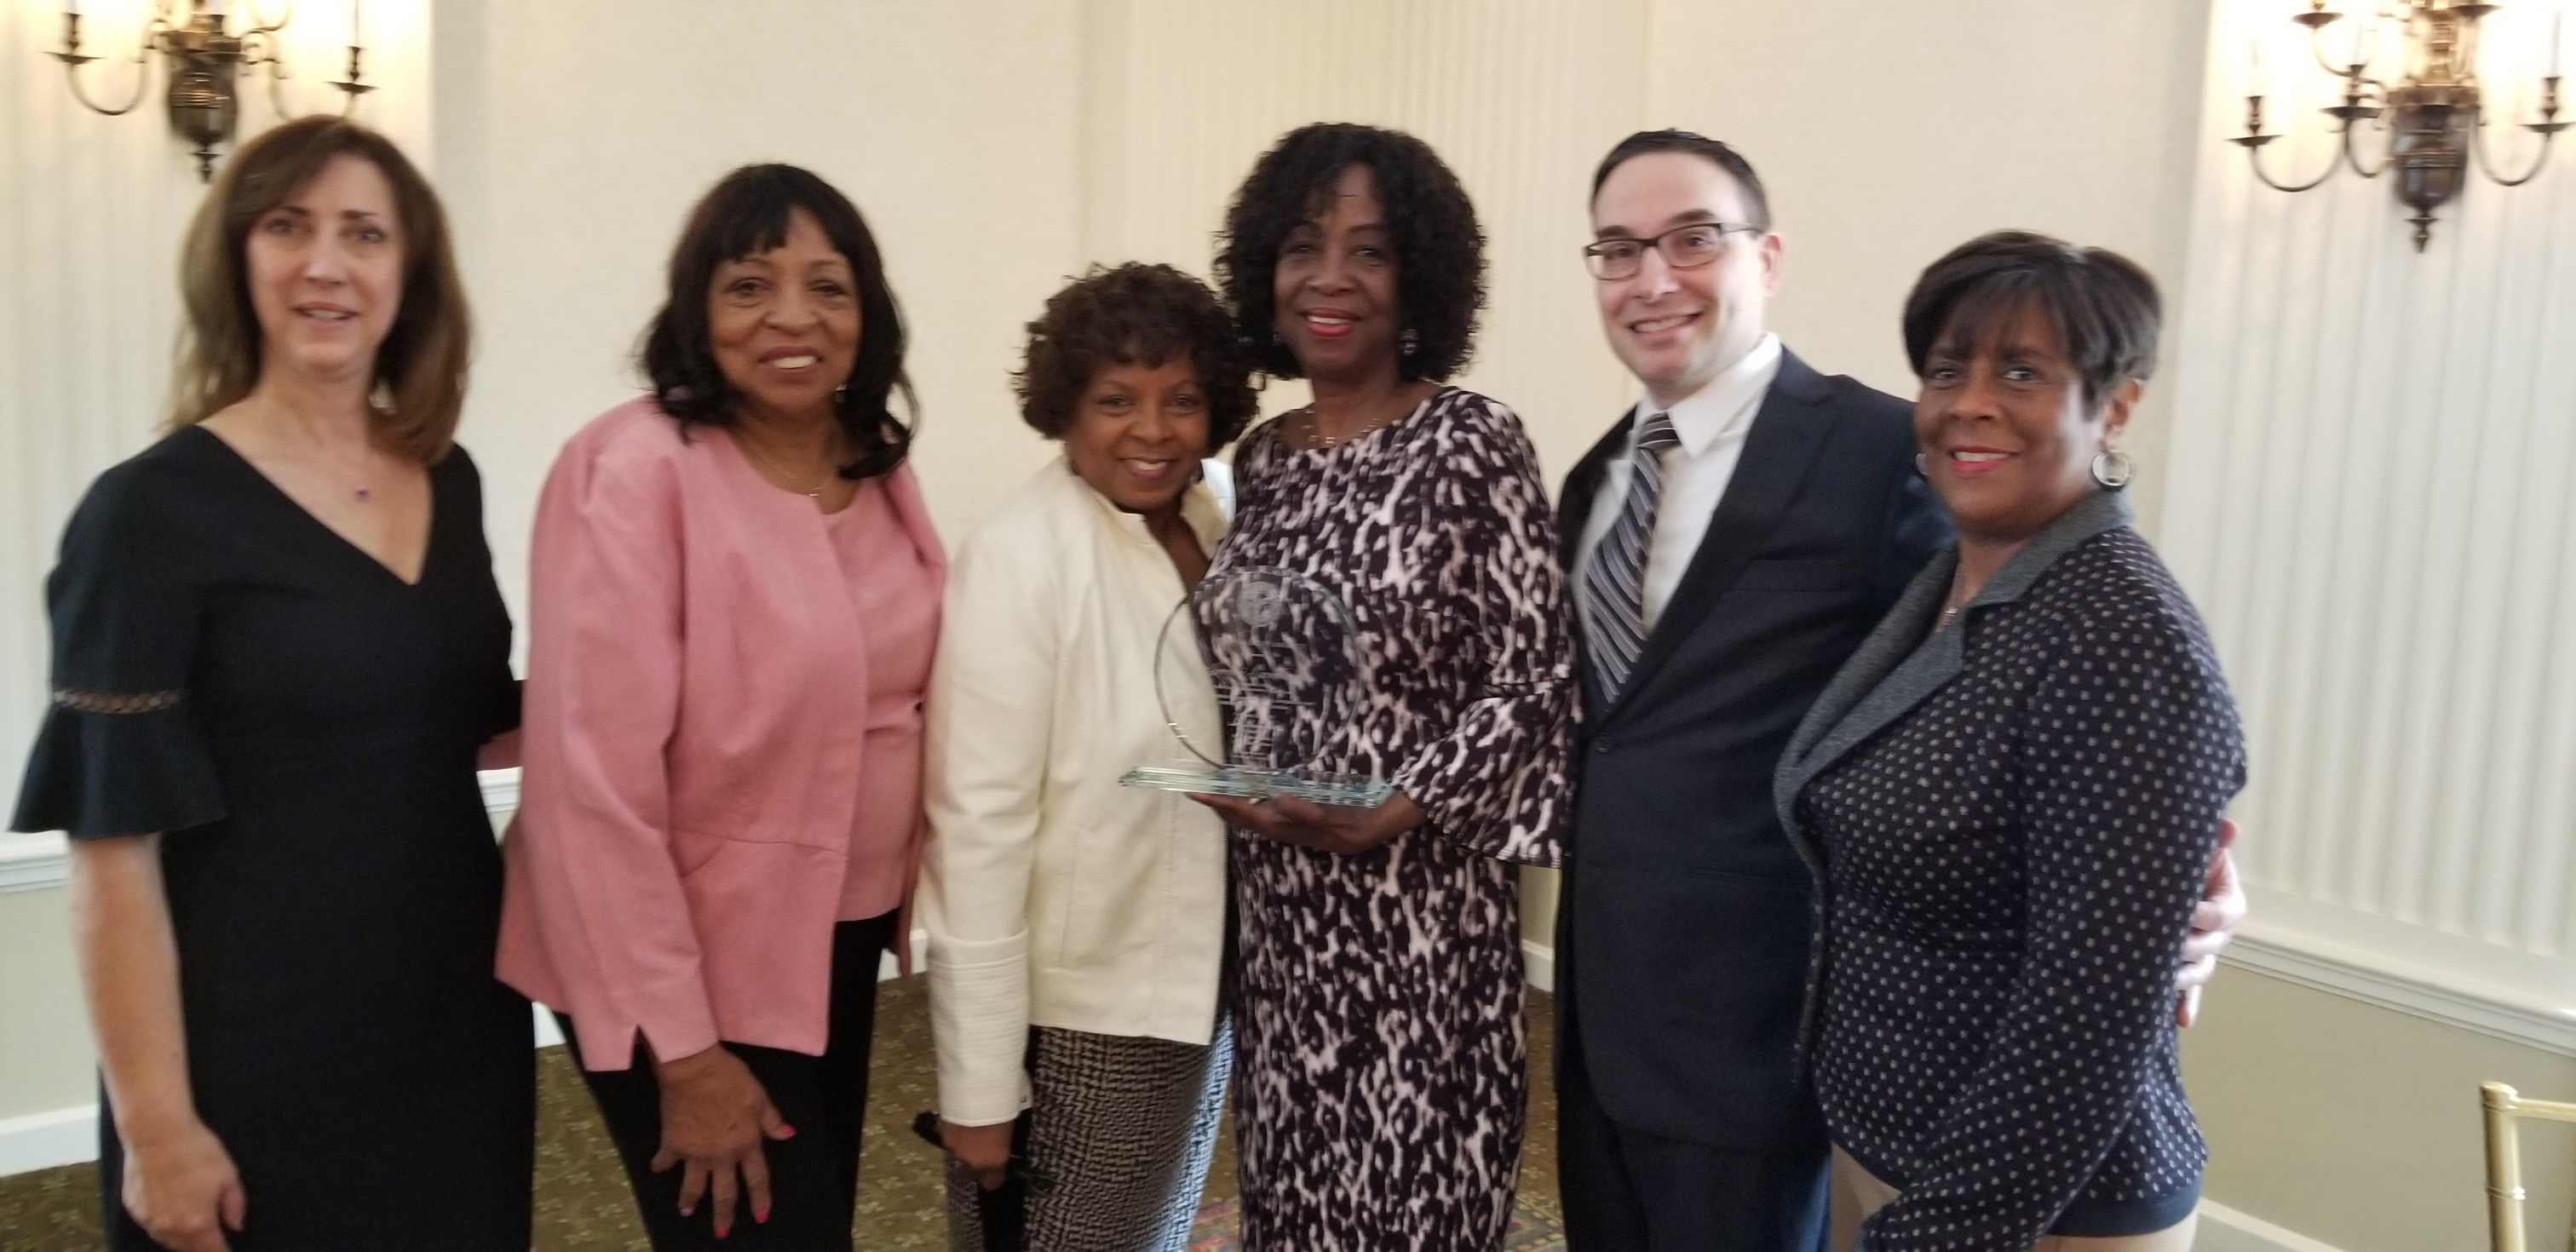 Our-own-1st-VP-Jacqui-Greadington-was-honored-this-morning-2.22.19-at-the-Essex-County-Democratic-Labor-Breakfast.-Anthony-Rosamilia-had-the-honor-of-introducing-her-6